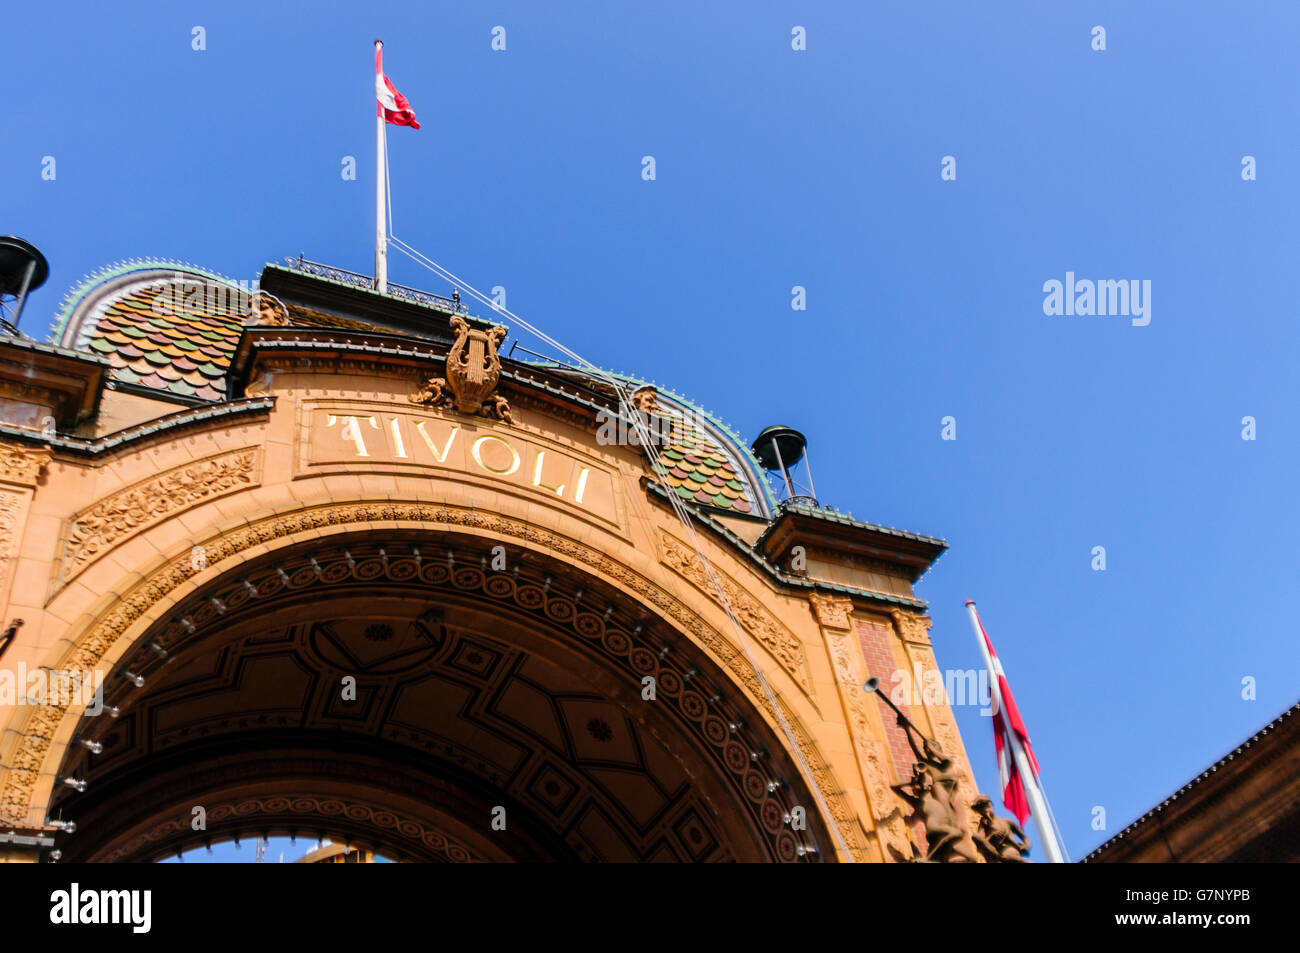 Tivoli Amusement Park Netherlands Balloon Arch Stock Photos And Balloon Arch Stock Images Alamy